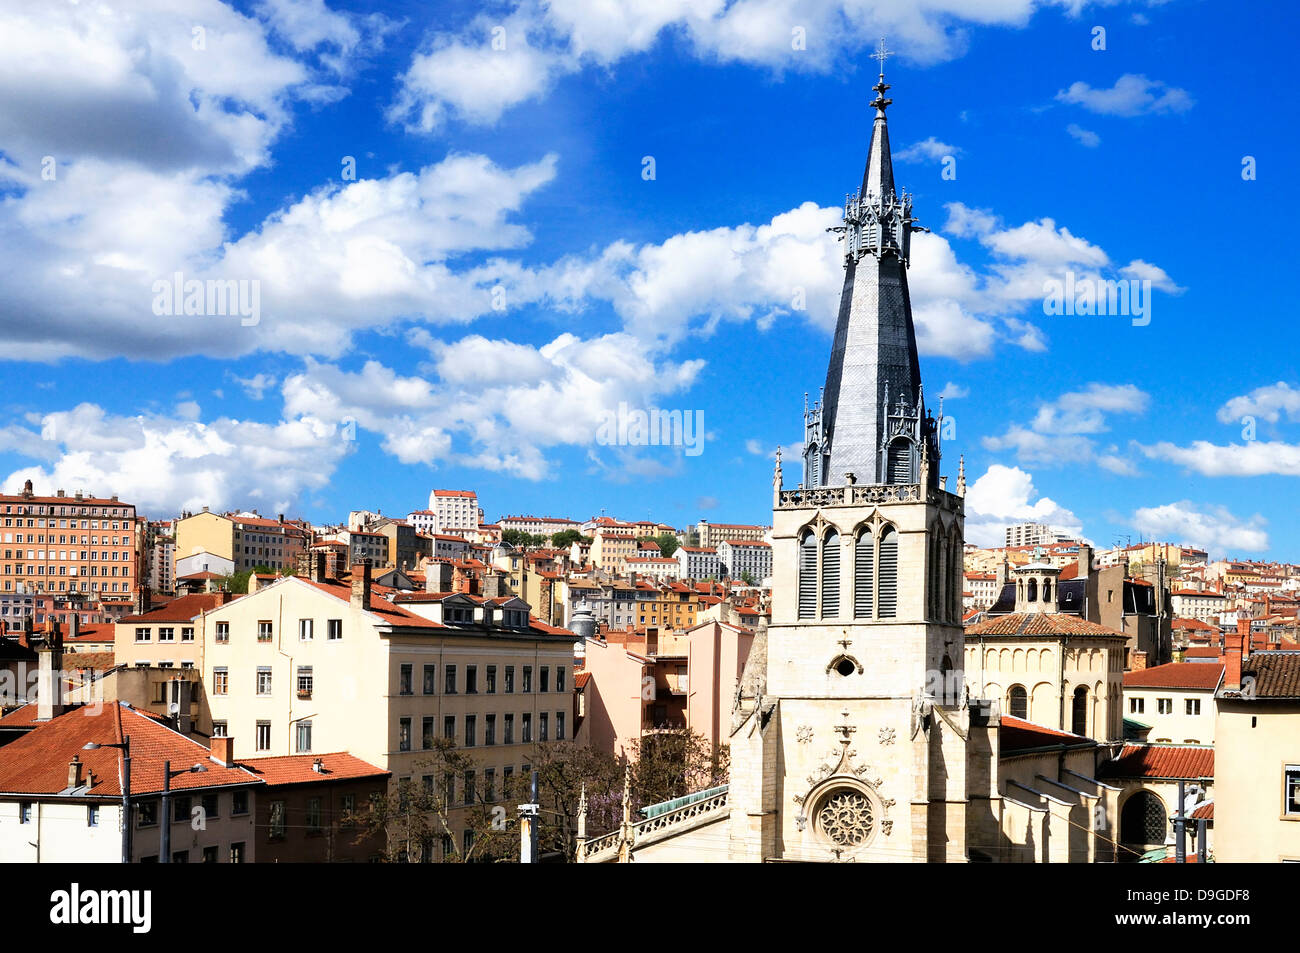 skyline and view of Lyon city, Rhone-alpes, France Stock Photo